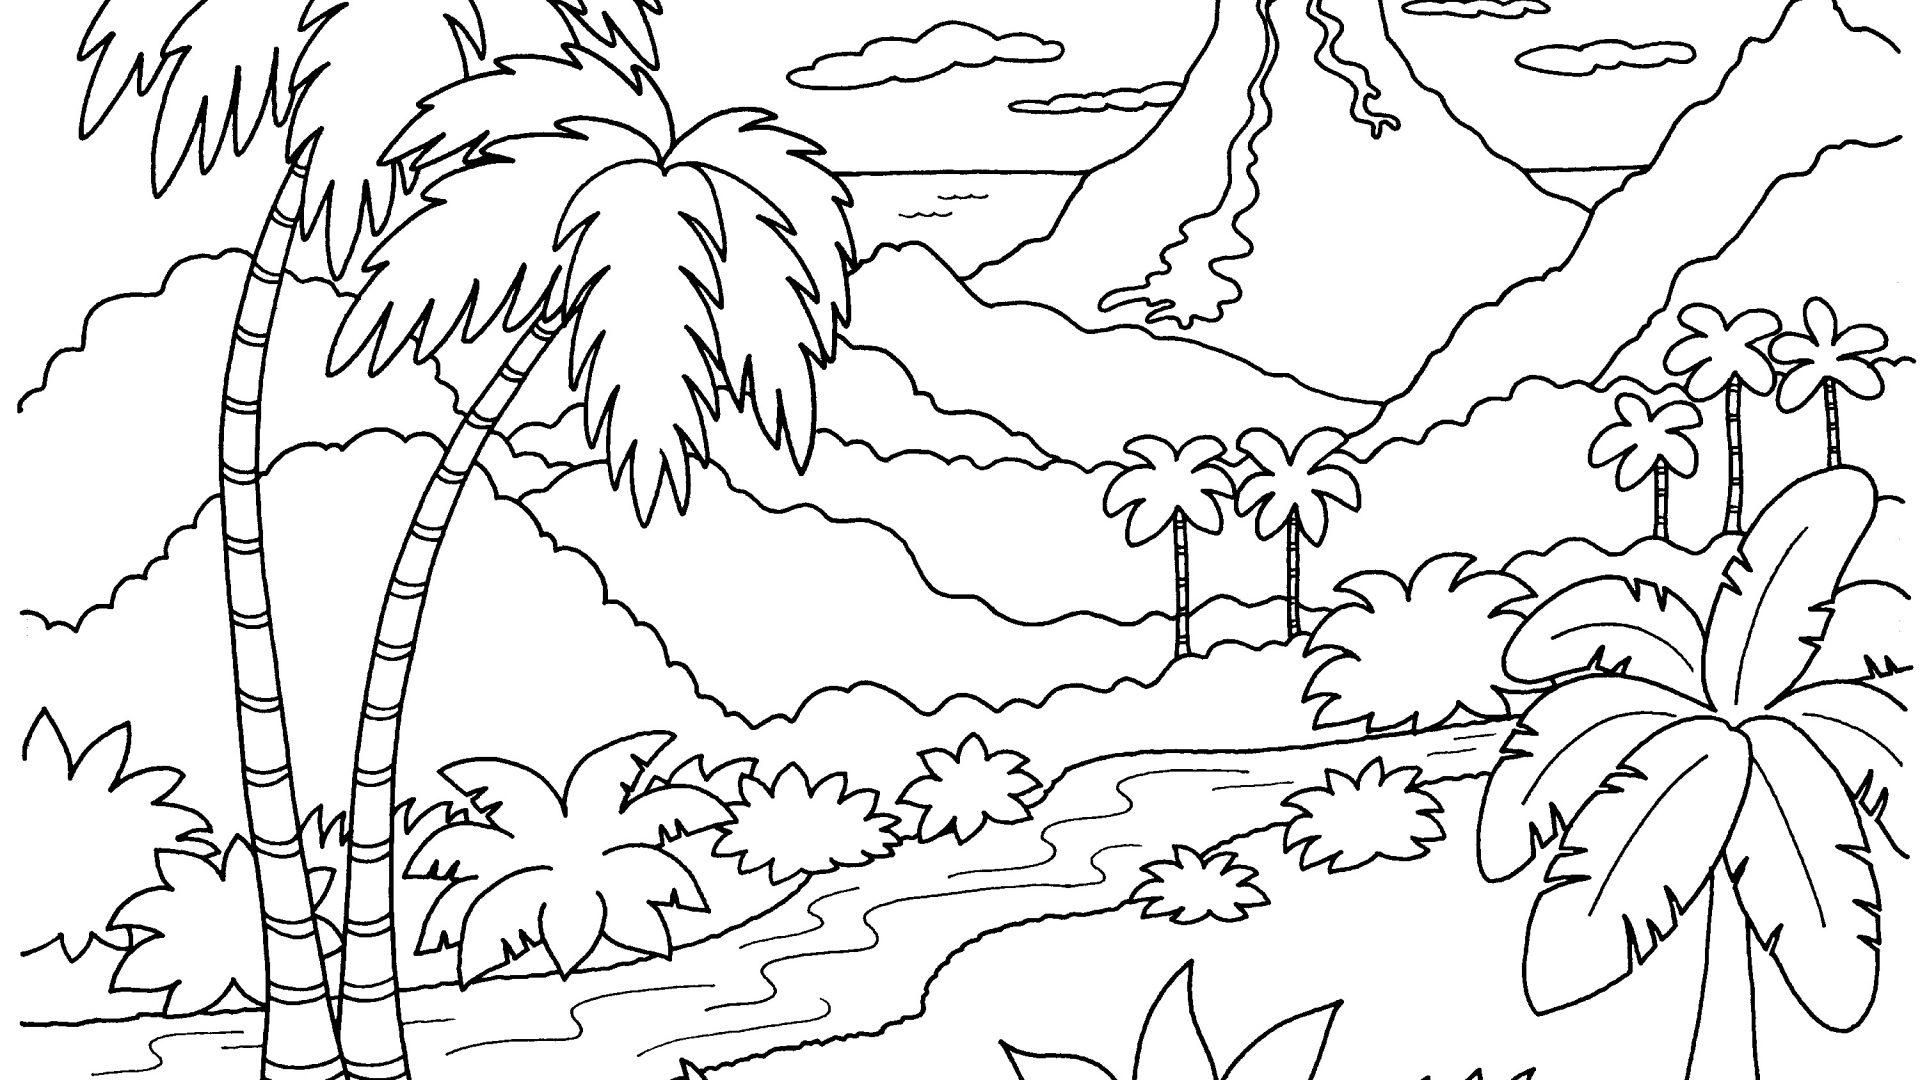 nature scene nature coloring pages nature drawing for kids at getdrawings free download coloring scene nature pages nature